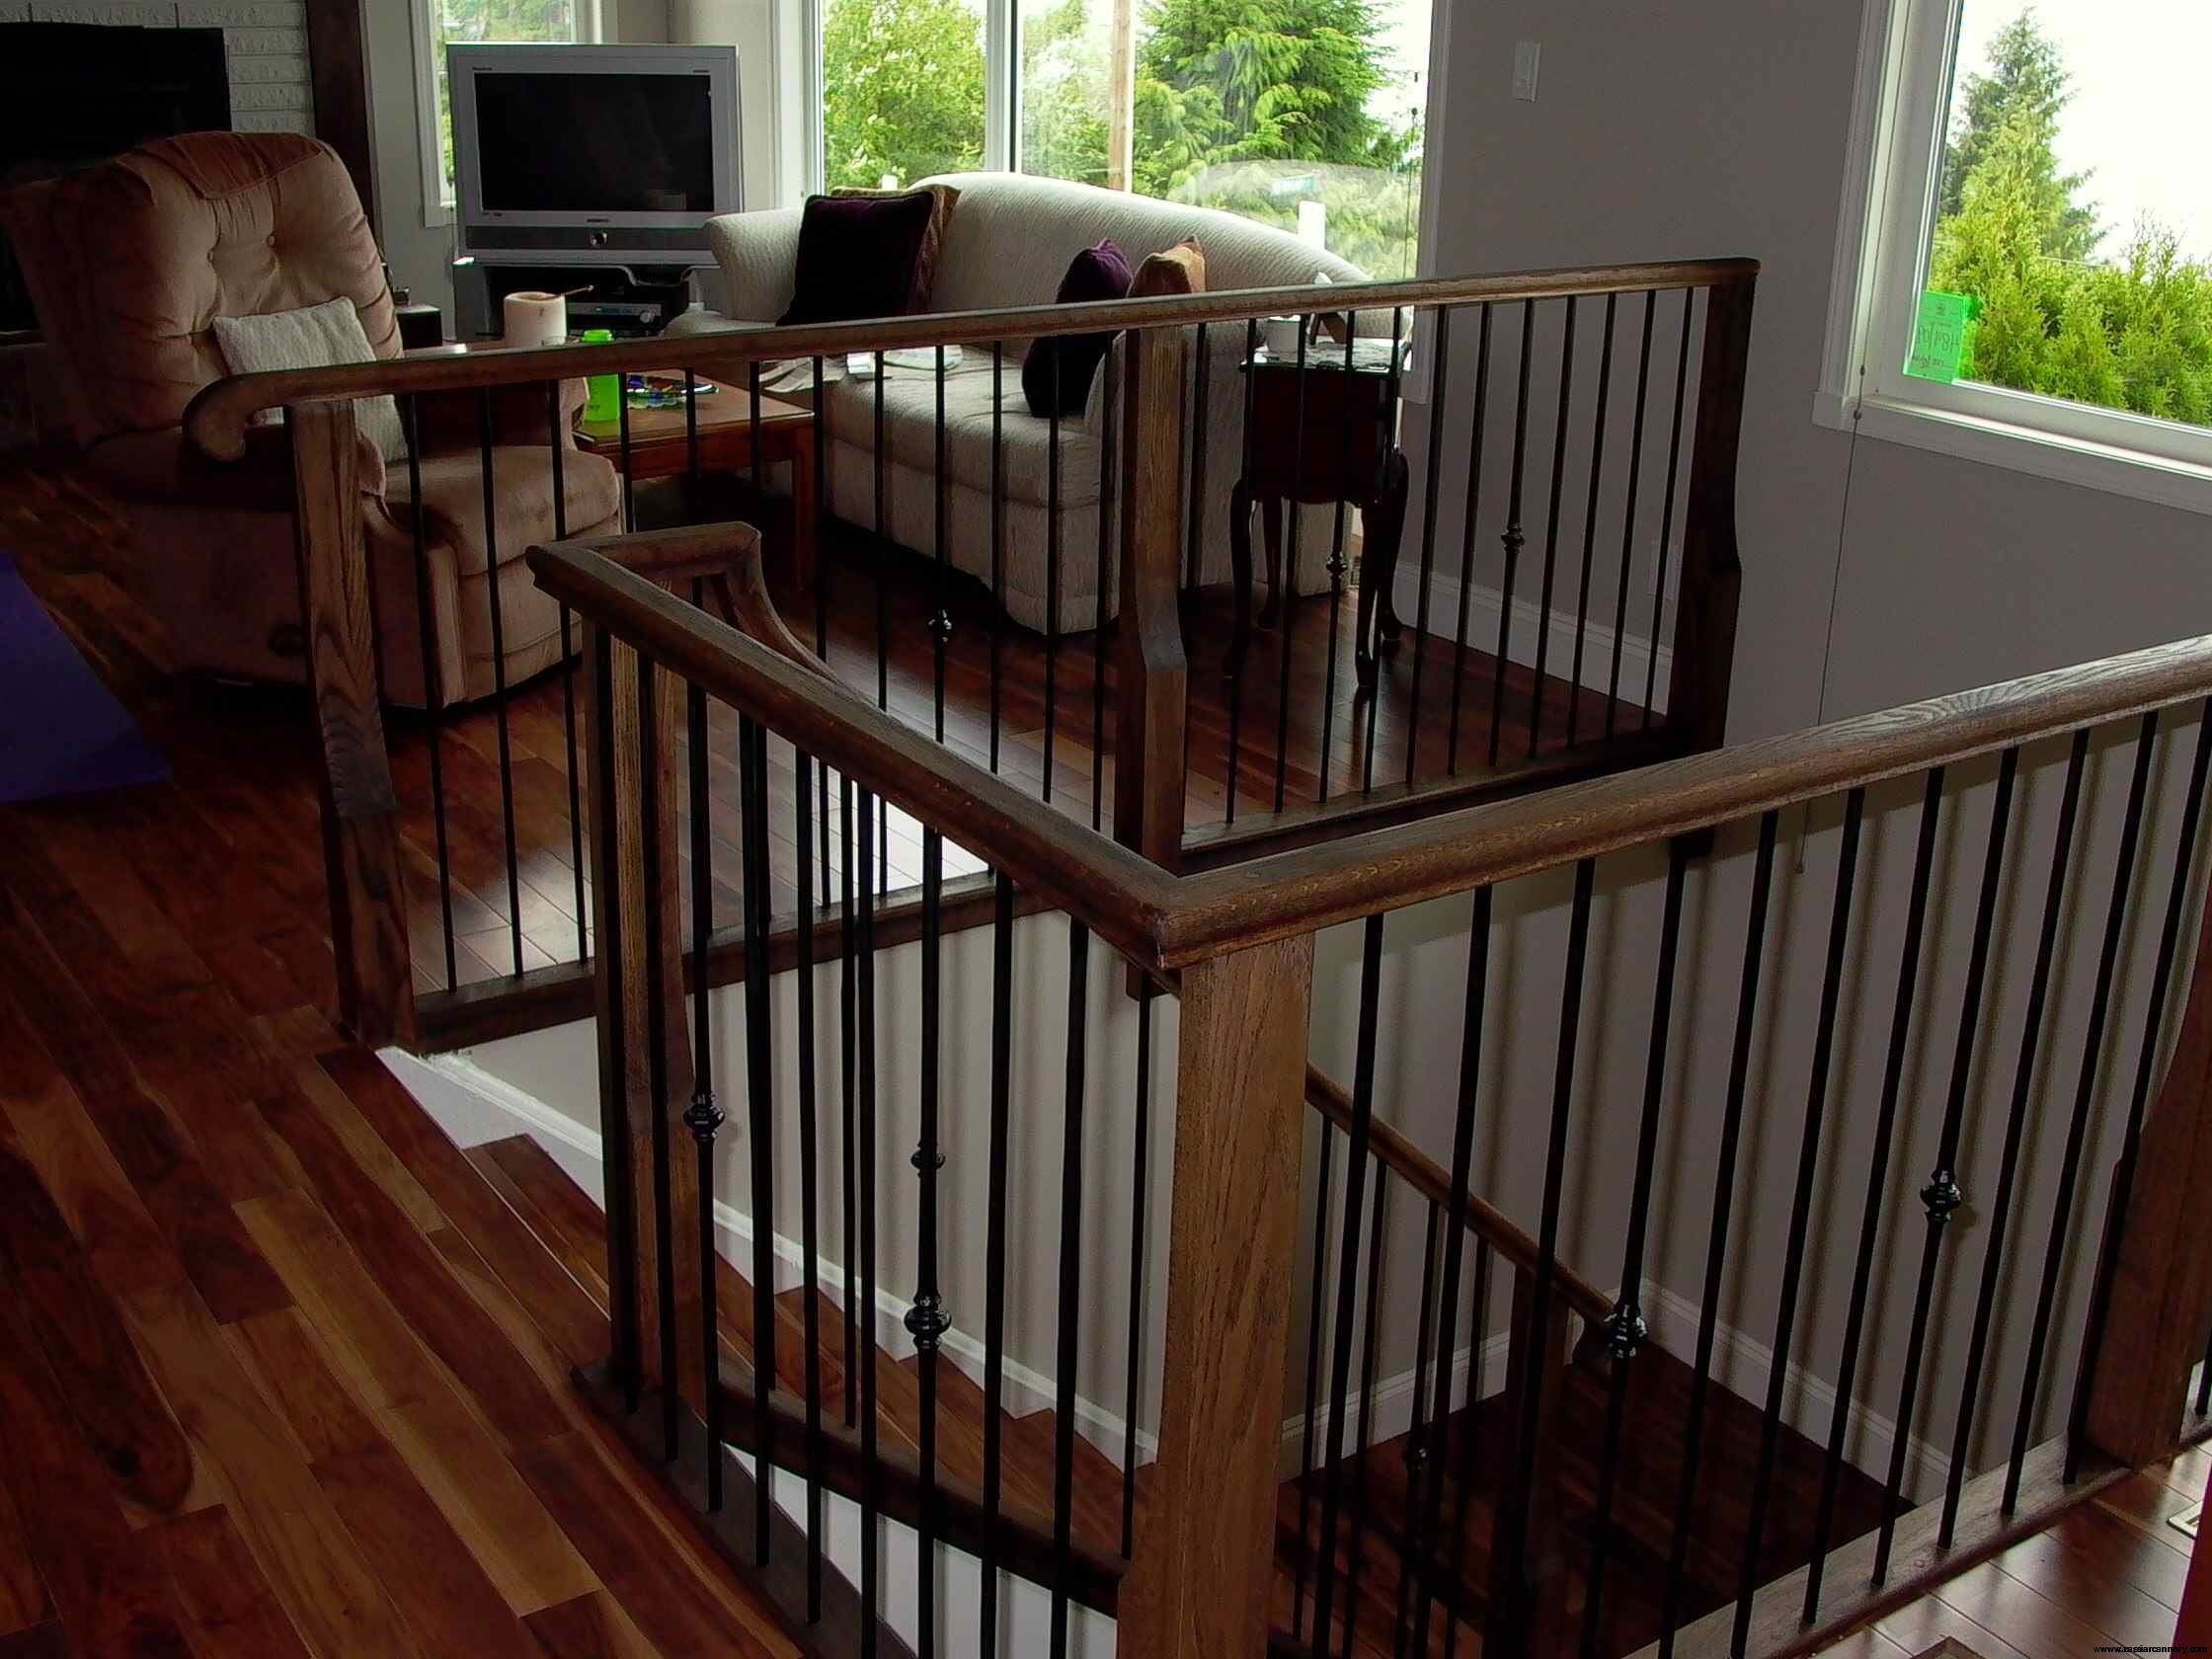 Cassiar Cannery - custom install of an oak and iron staircase railing